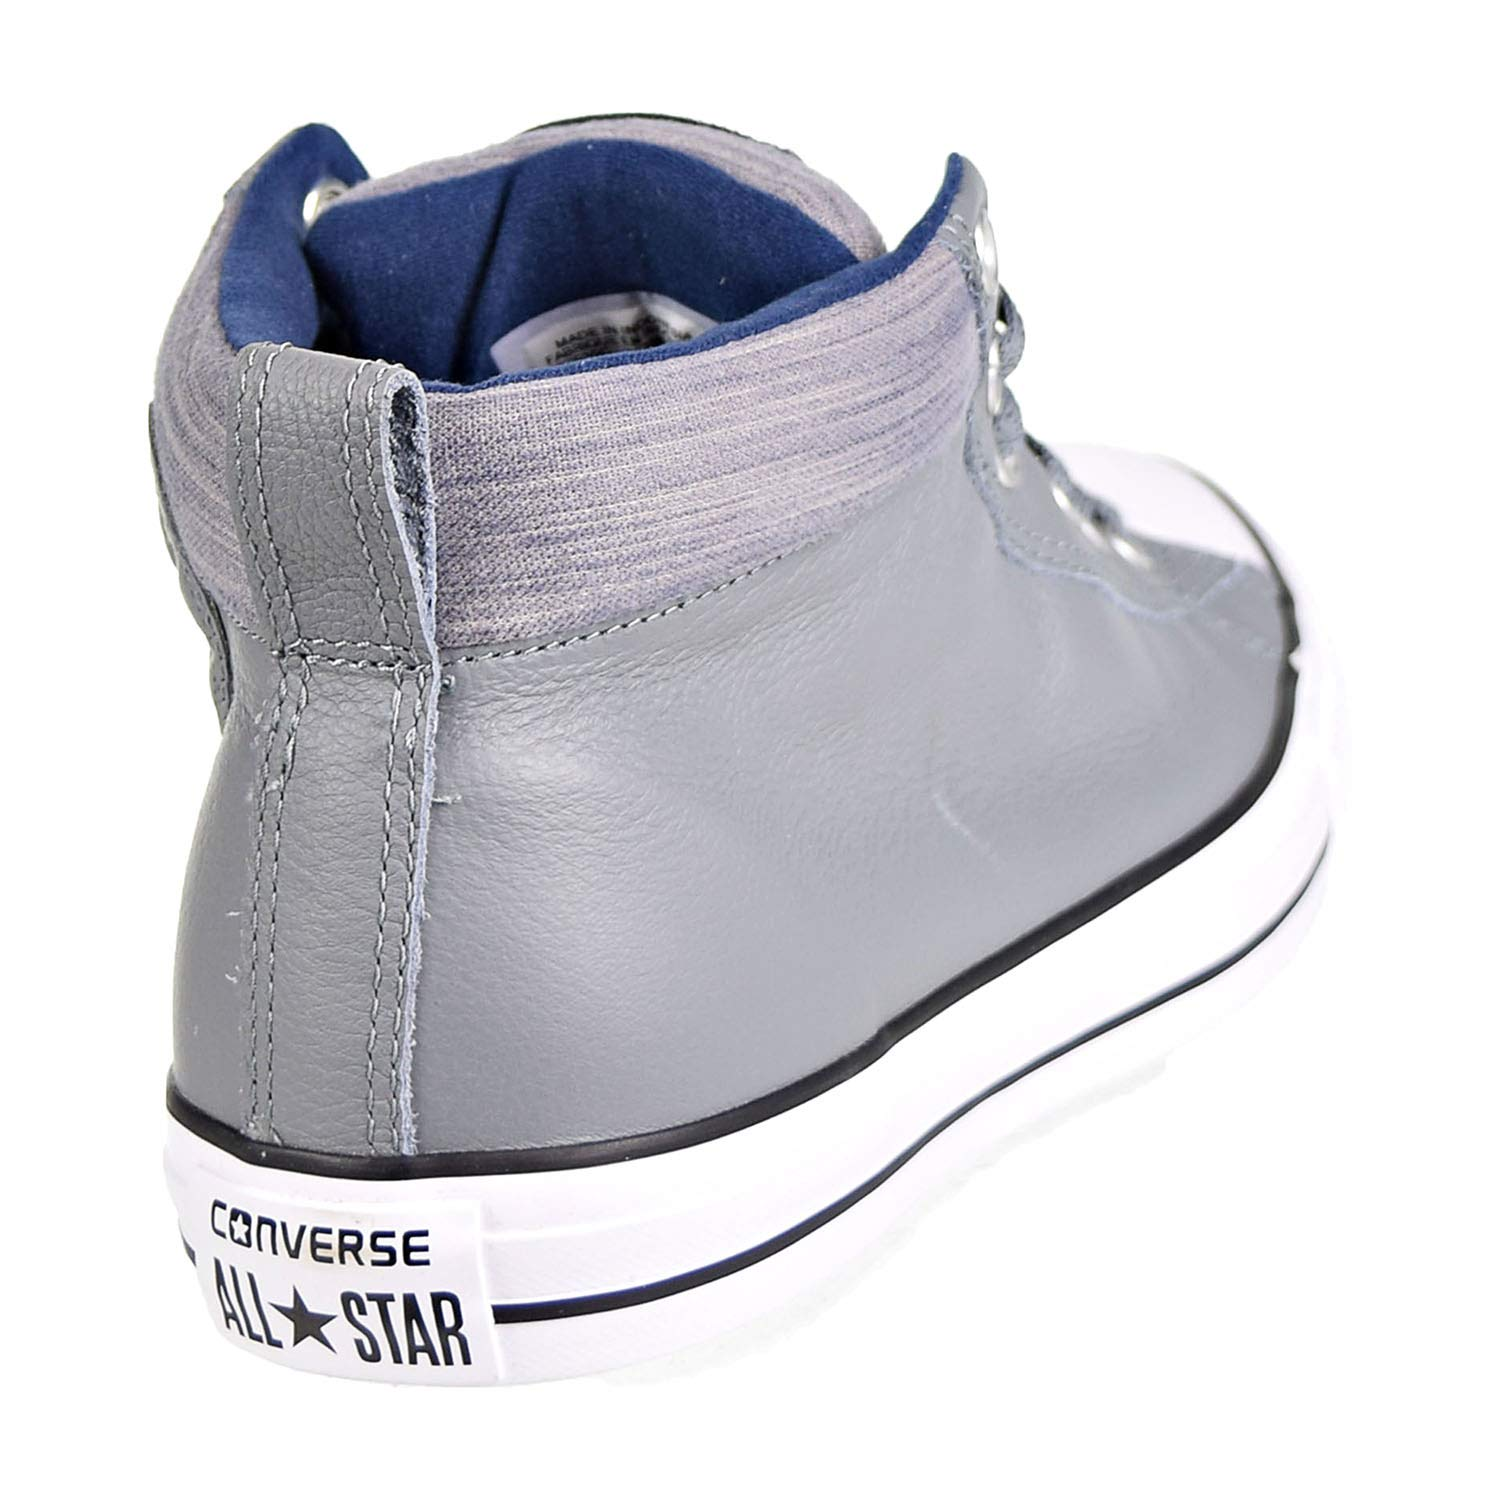 224a06a33d7e Converse Chuck Taylor All Star High Street Mono Sneaker  Amazon.fr   Chaussures et Sacs